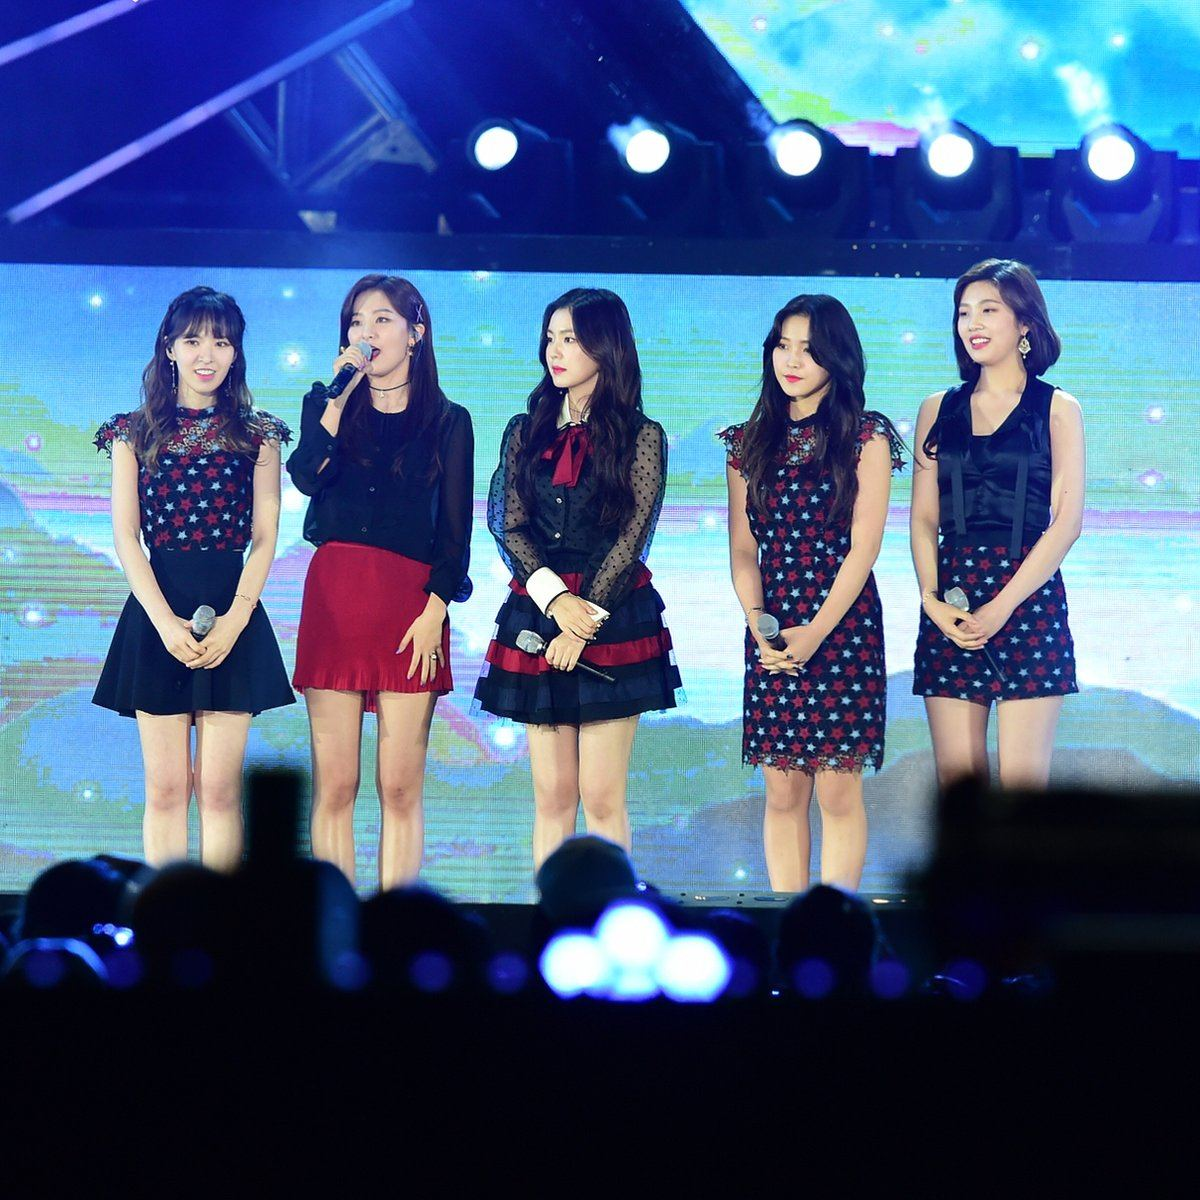 Red Velvet's Personality Analyzed Based on their Handwriting - Koreaboo